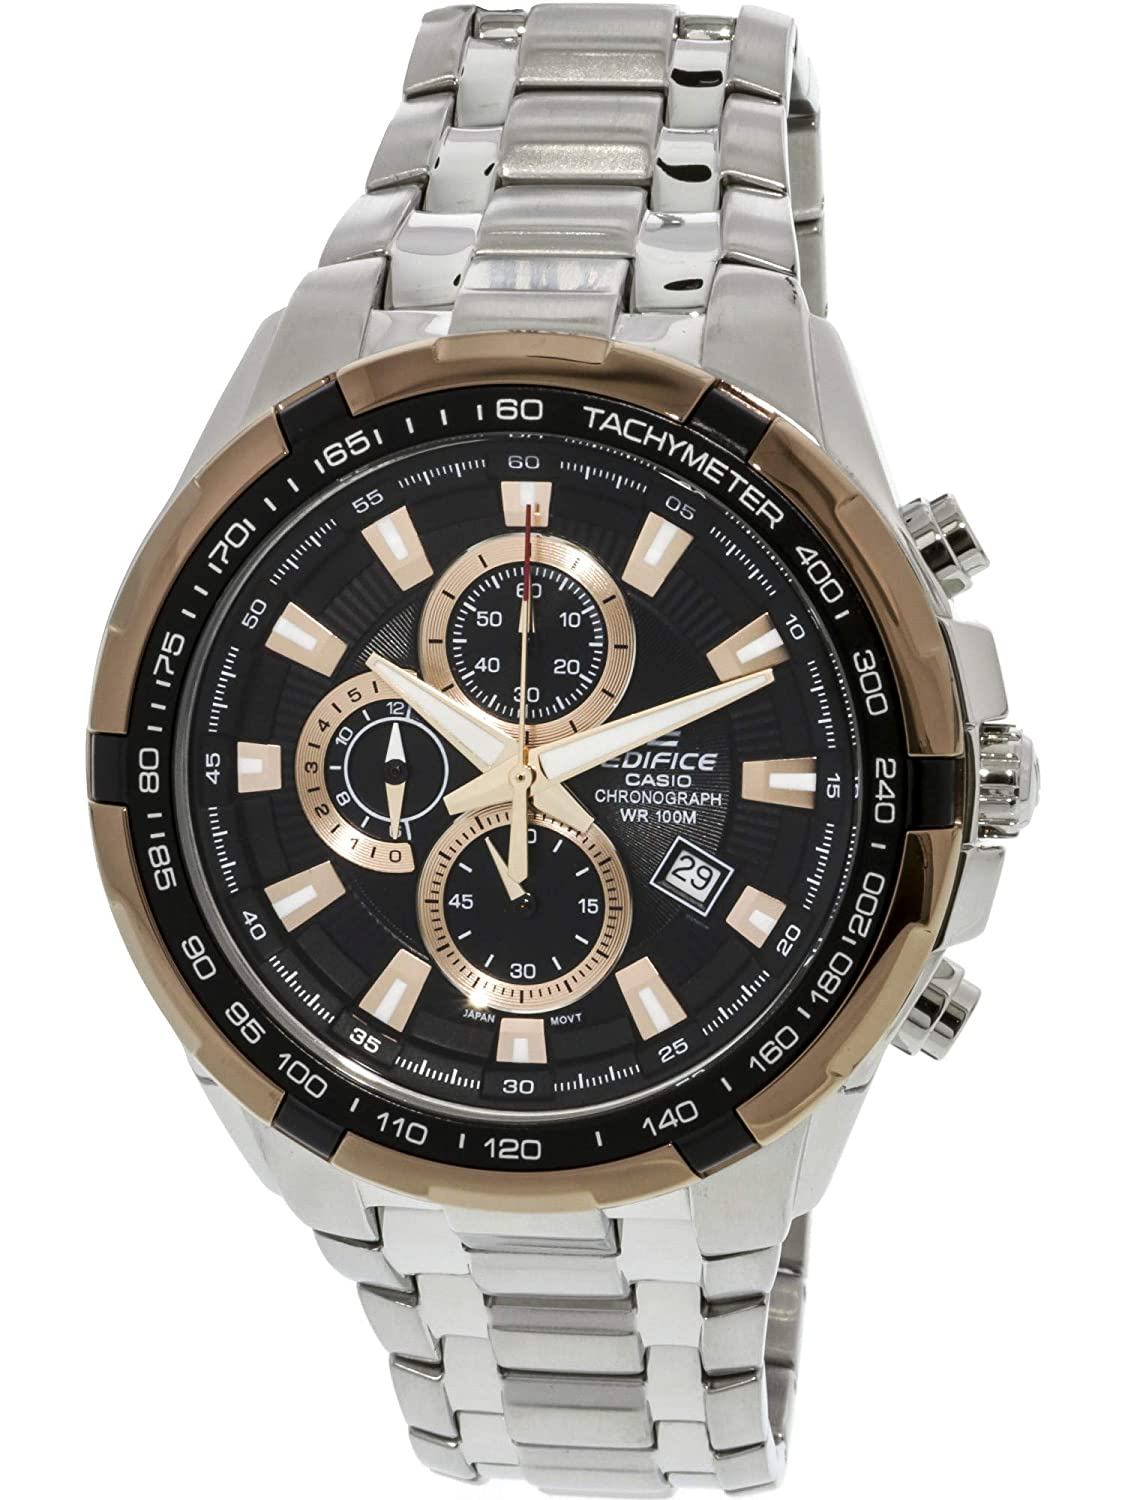 86f1e9edcab4 Amazon.com  Casio General Men s Watches Edifice Chronograph EF-539D-1A5VDF  - WW  Casio  Watches